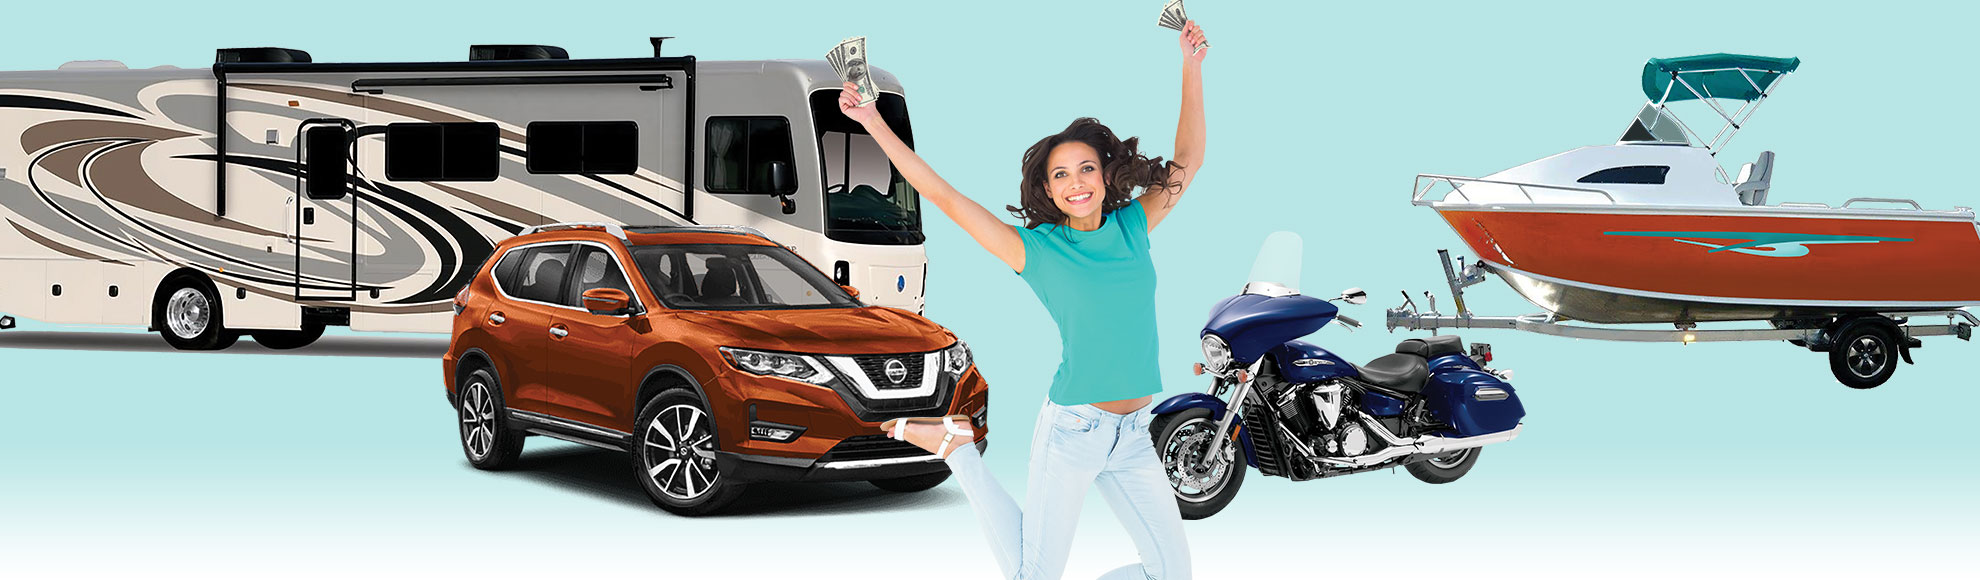 Auto Refi Promotion- Girl jumping with excitement with an RV, car, motorcycle, and boat behind her